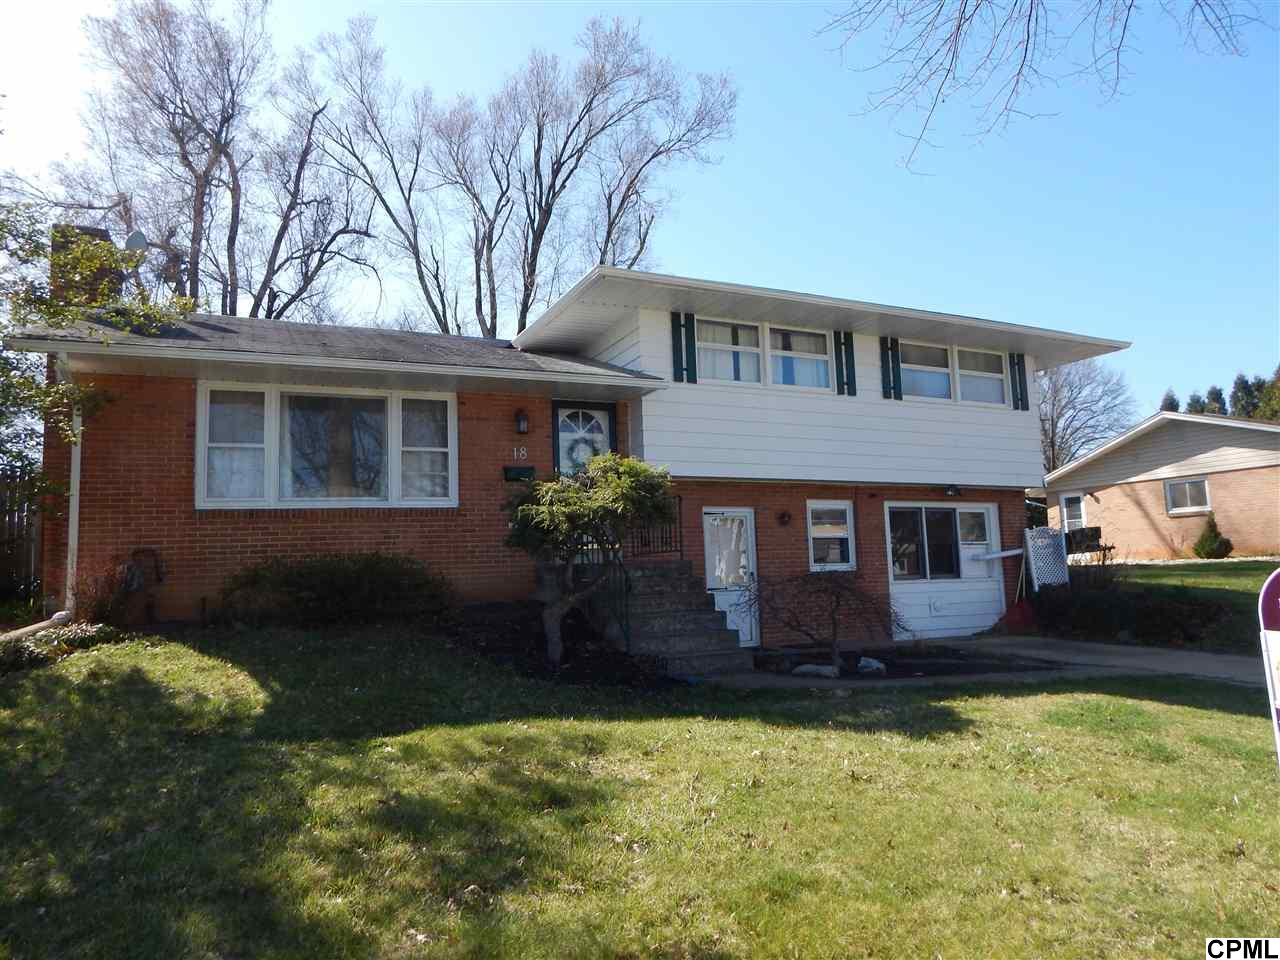 18 Grinnel Dr, Camp Hill, PA 17011